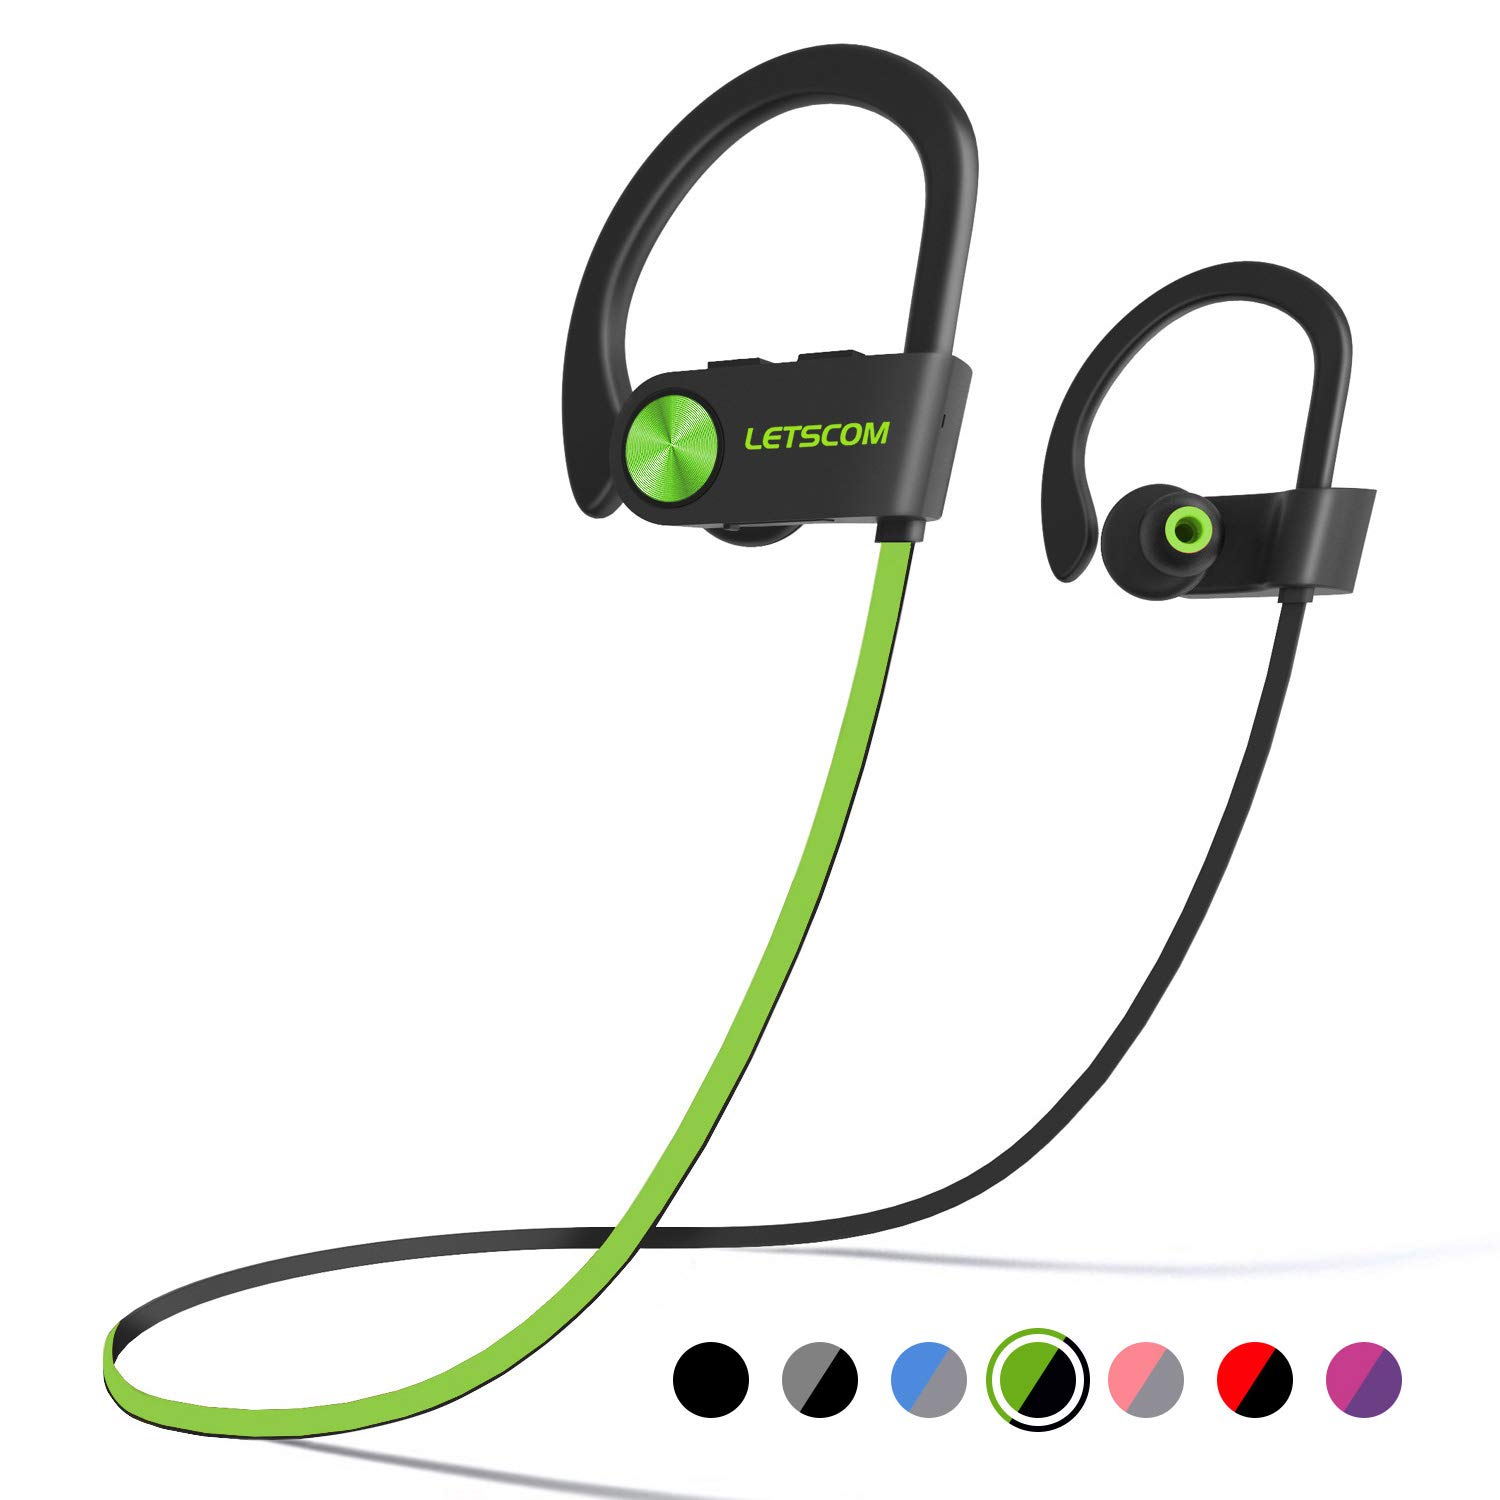 letscom-bluetooth-headphones-ipx7-waterproof-wireless-sport-earphones-hifi-bass-stereo-sweatproof-earbuds-wmic-noise-cancelling-headset-for-workout-running-gym-8-hours-play-time